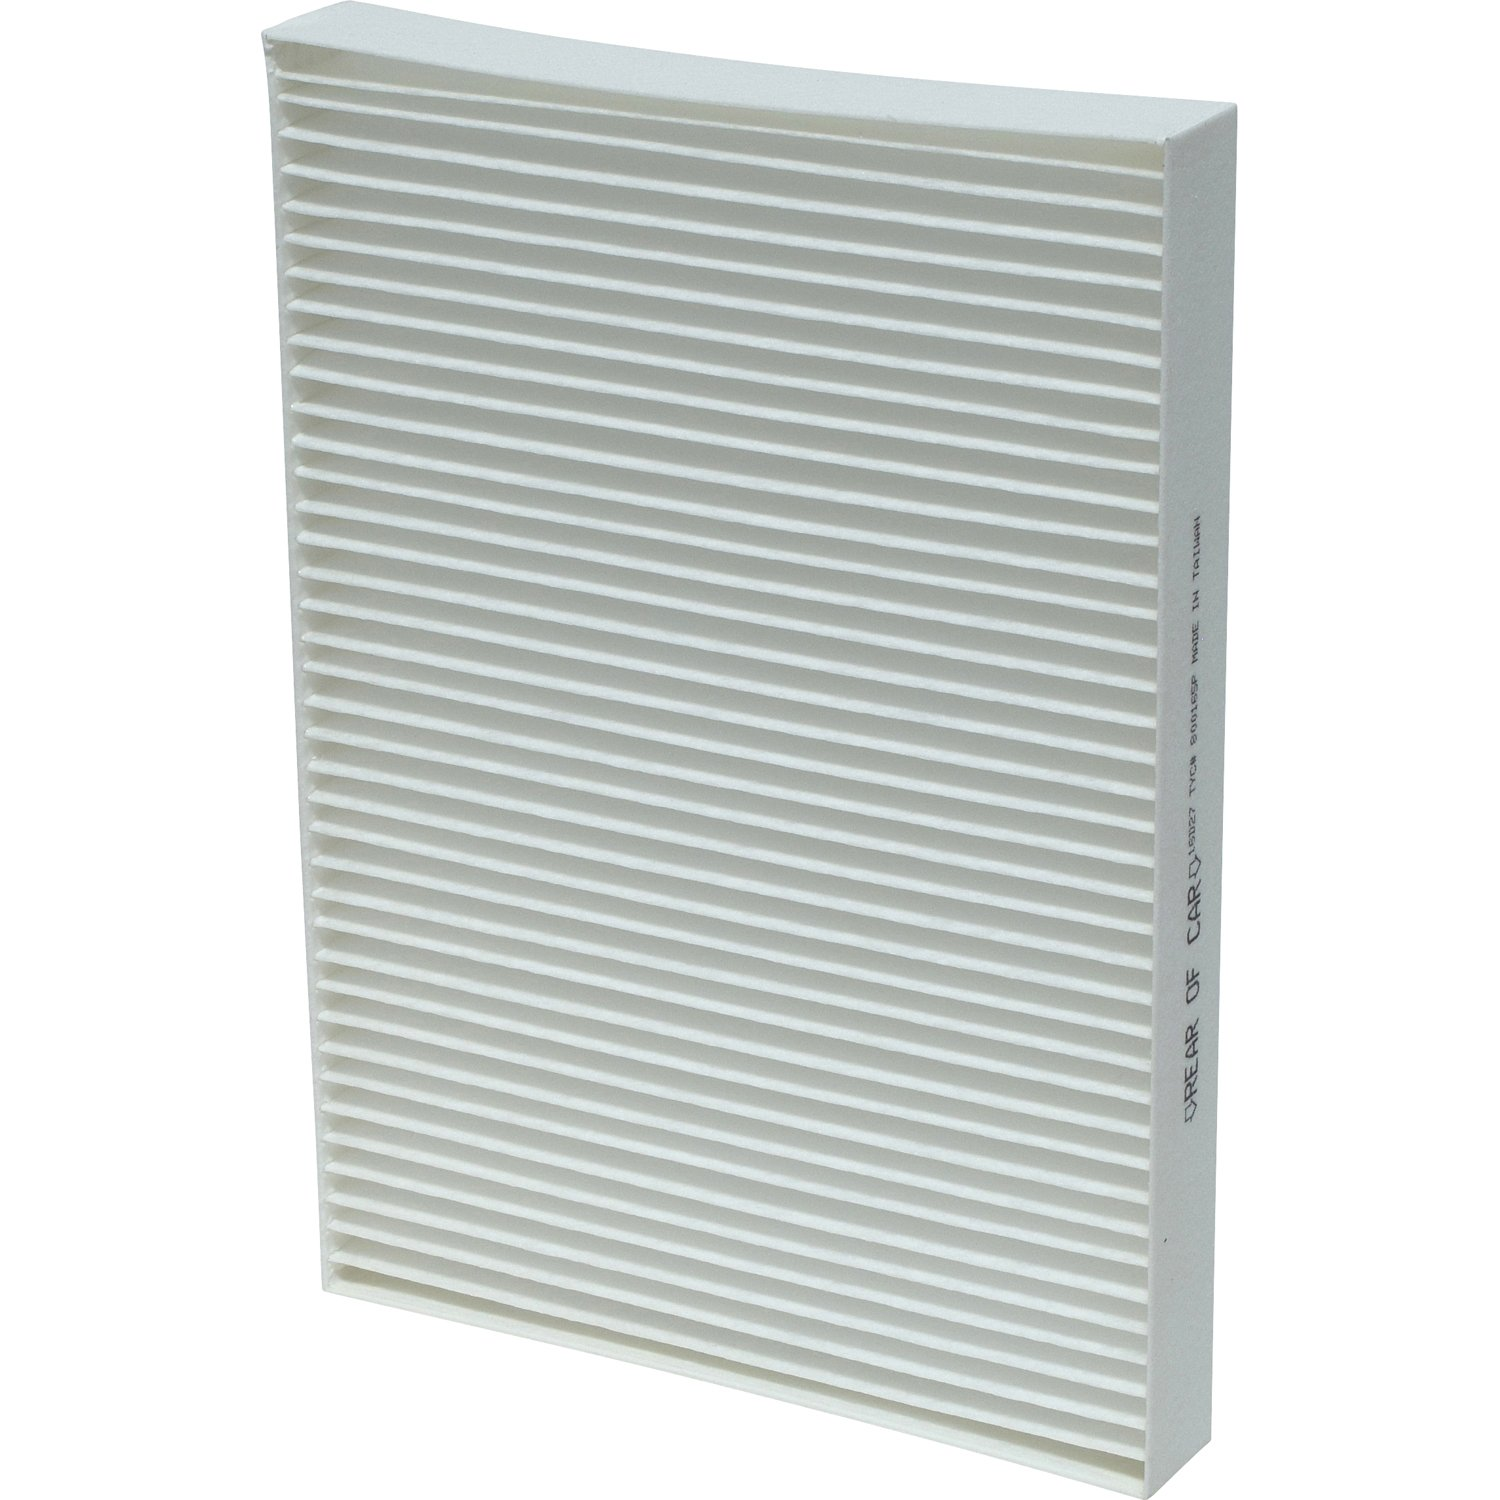 Universal Air Conditioner FI 1283C Cabin Air Filter